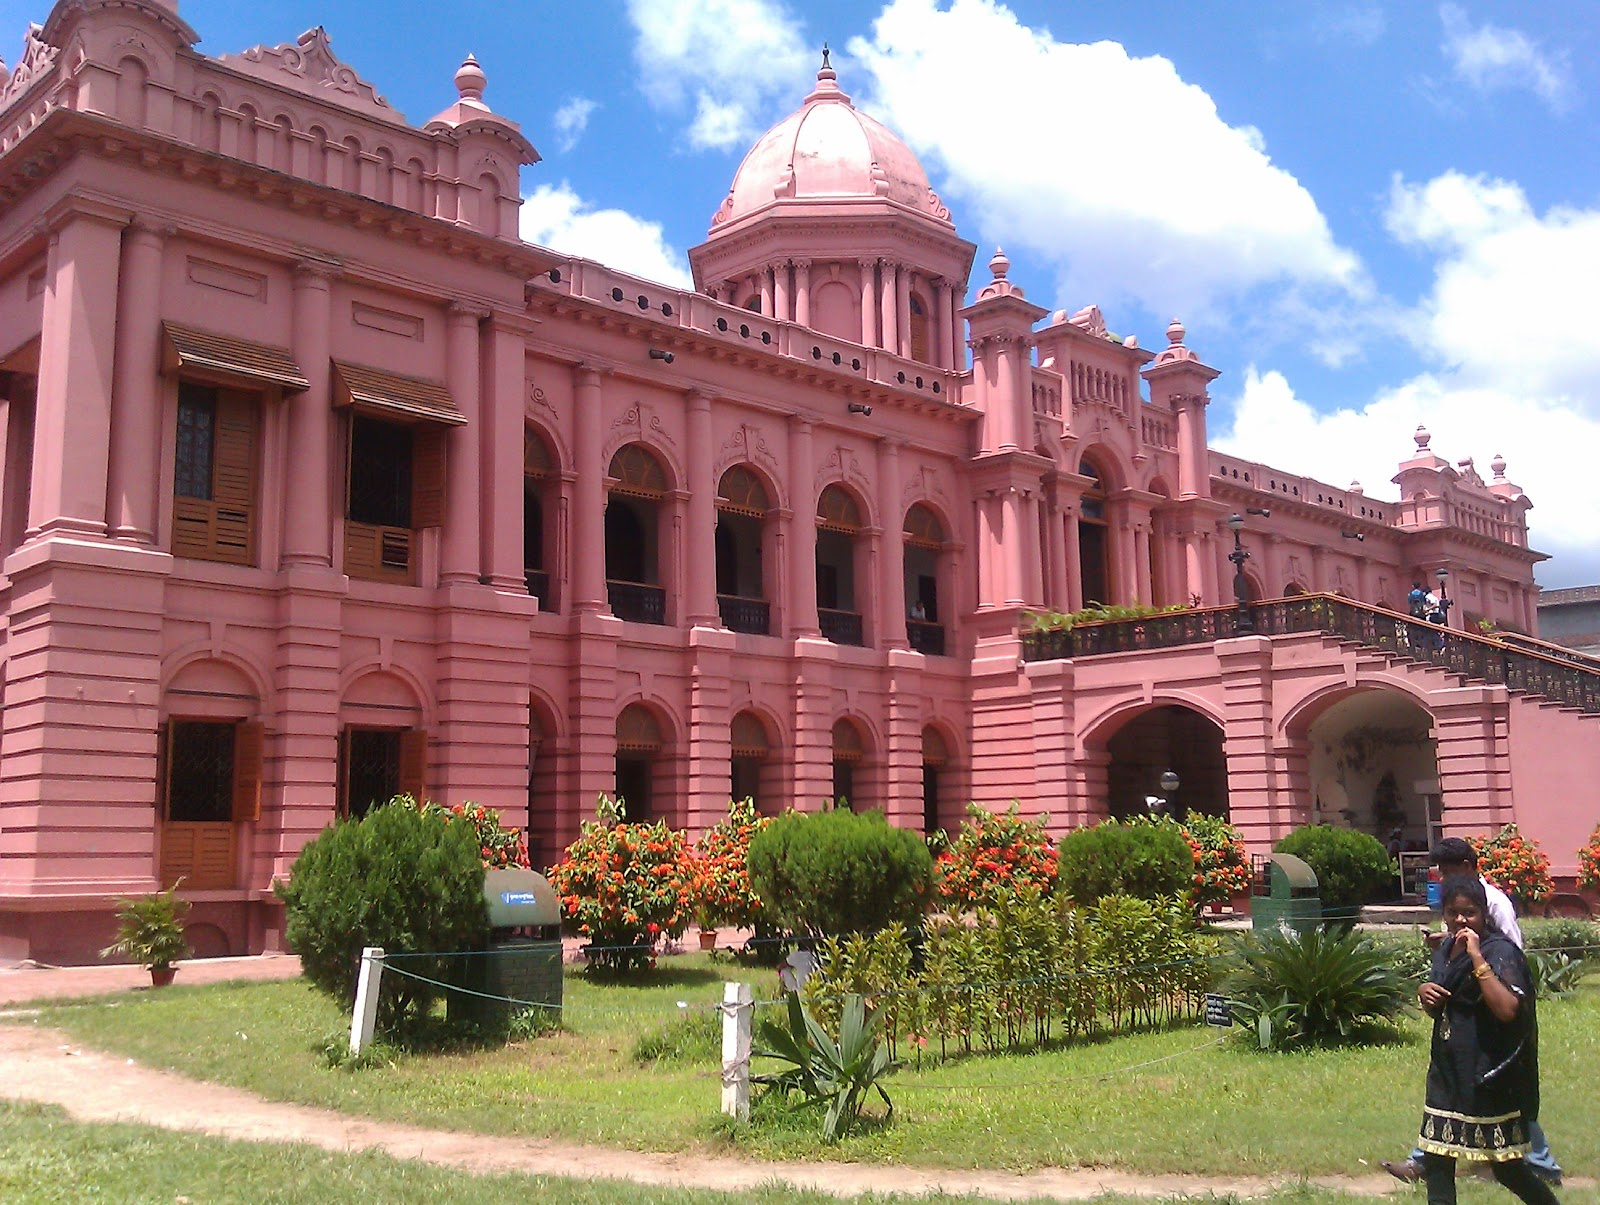 Lalbagh Fort and Ahsan Manzil (Historical place in Bangladesh)